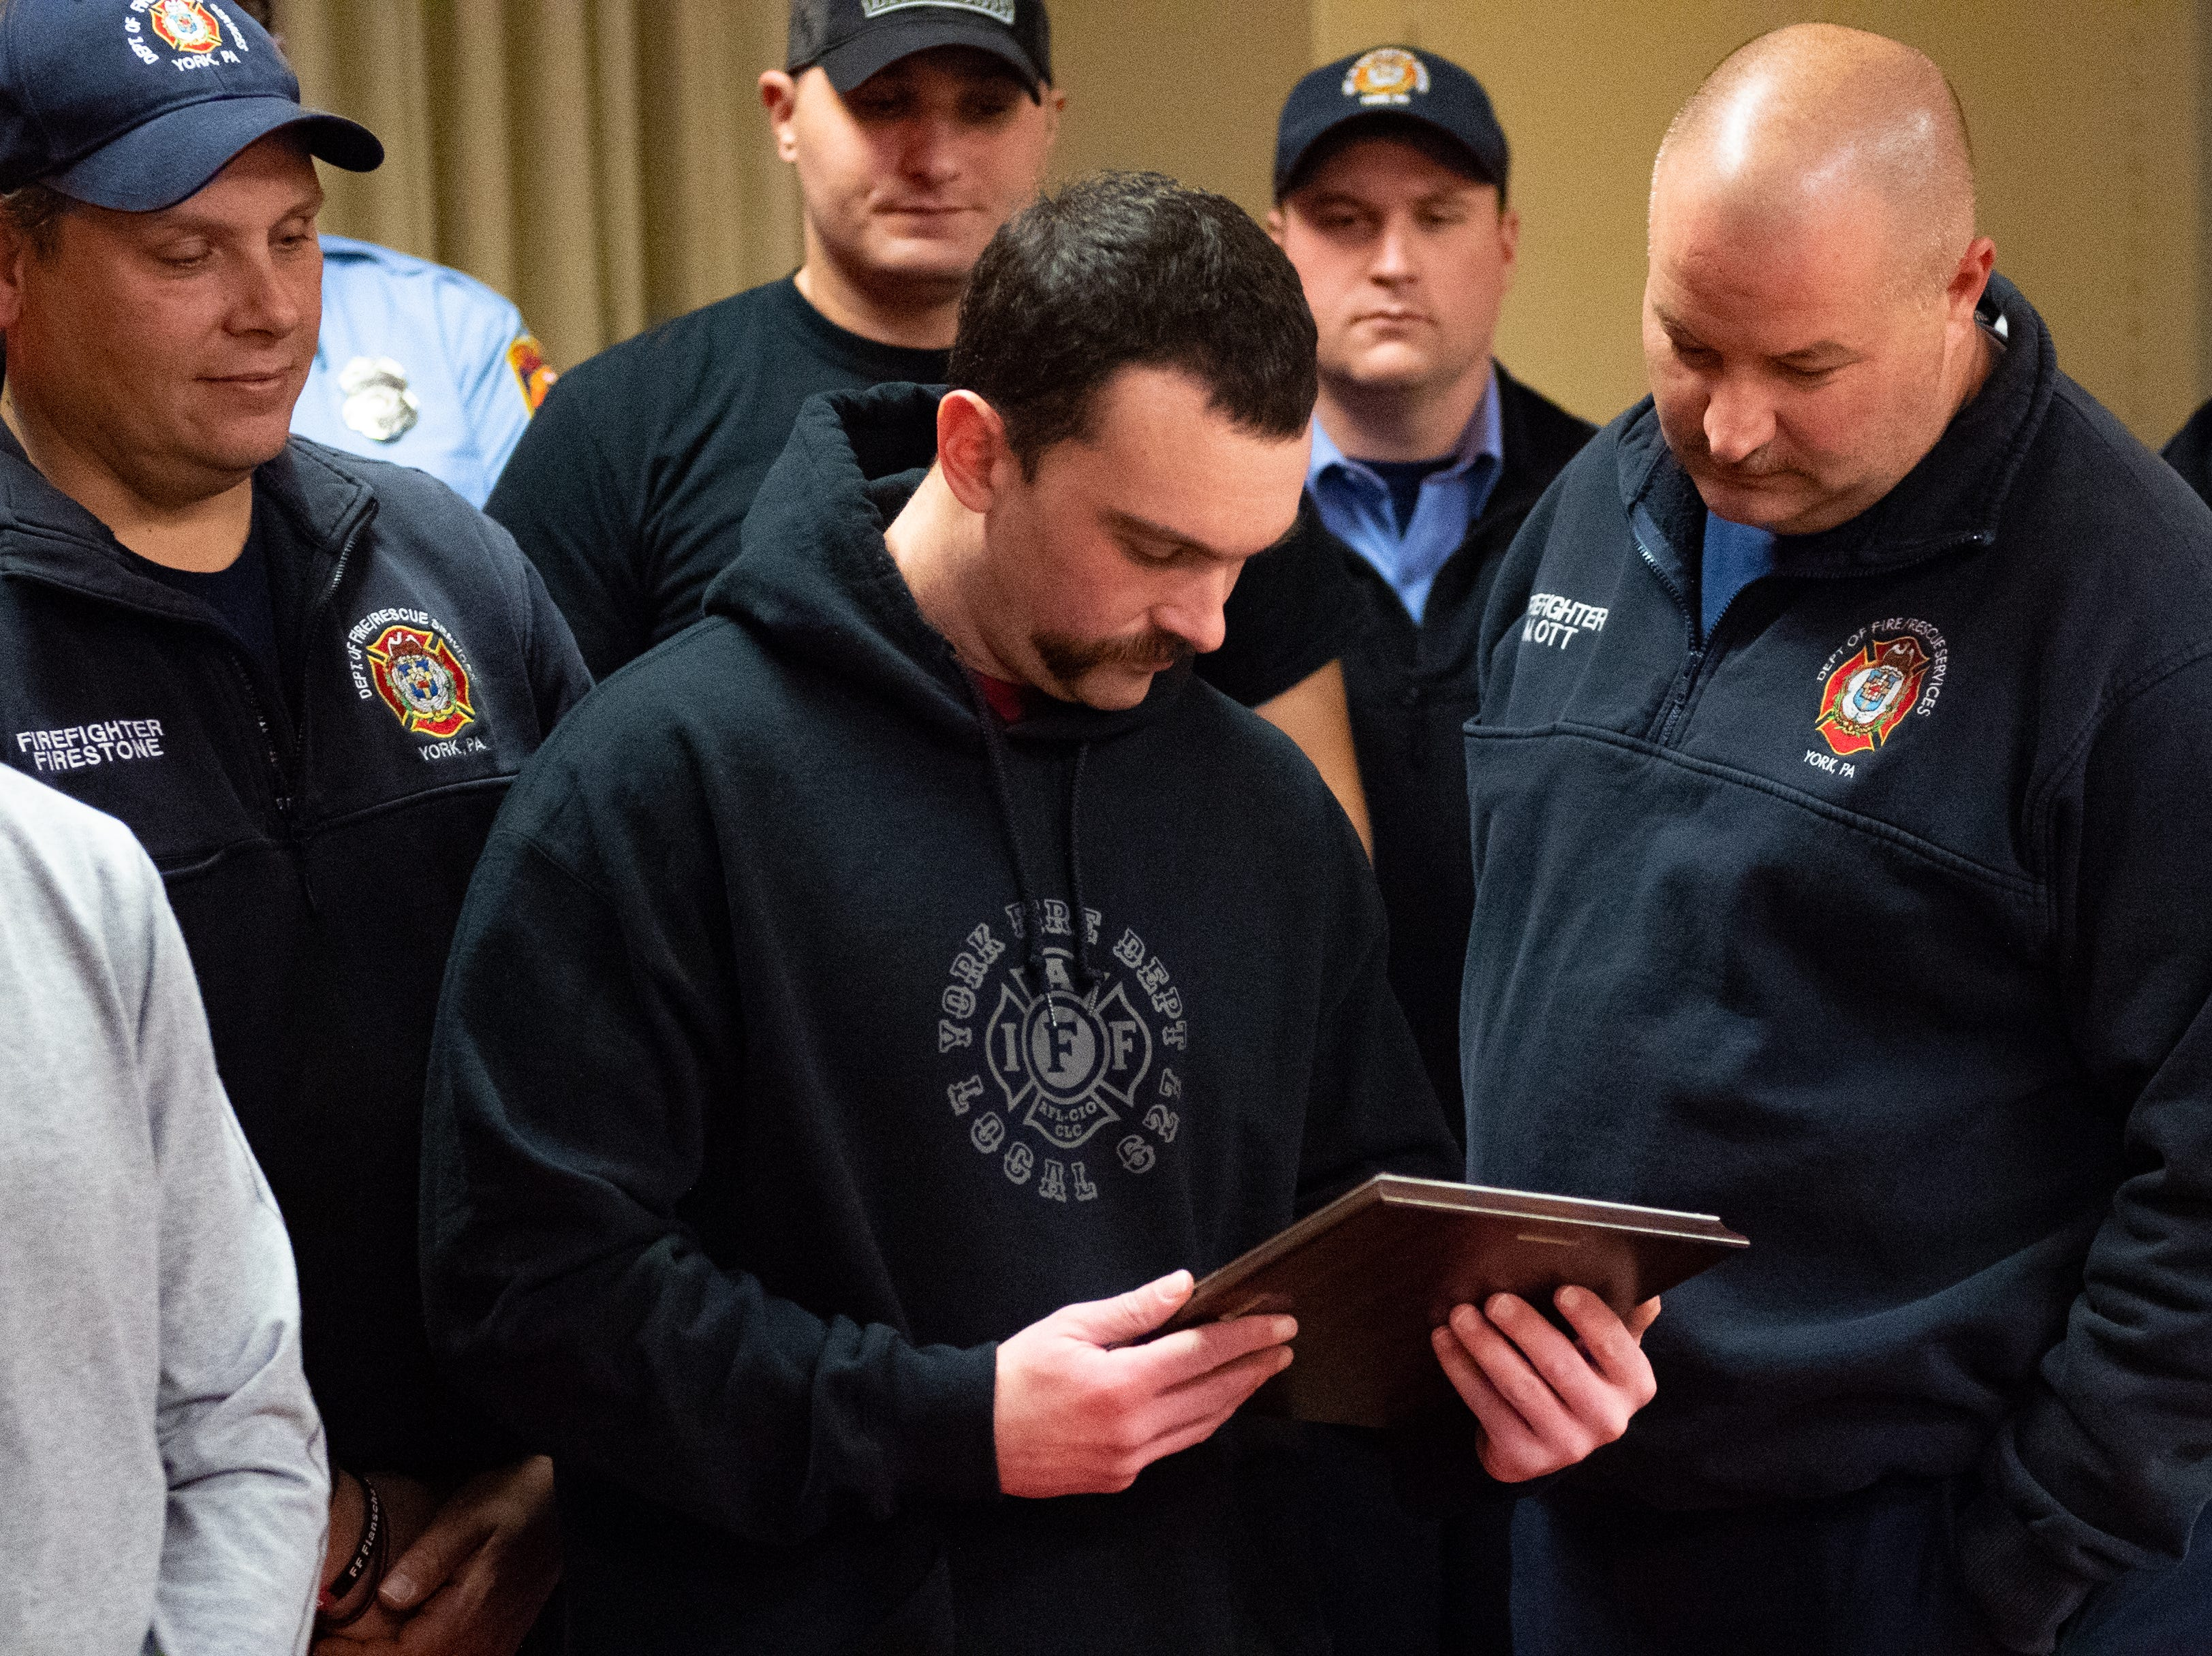 The firefighters passed the plaque around taking time to fully take in the pictures instilled on the wood, December 13, 2018.